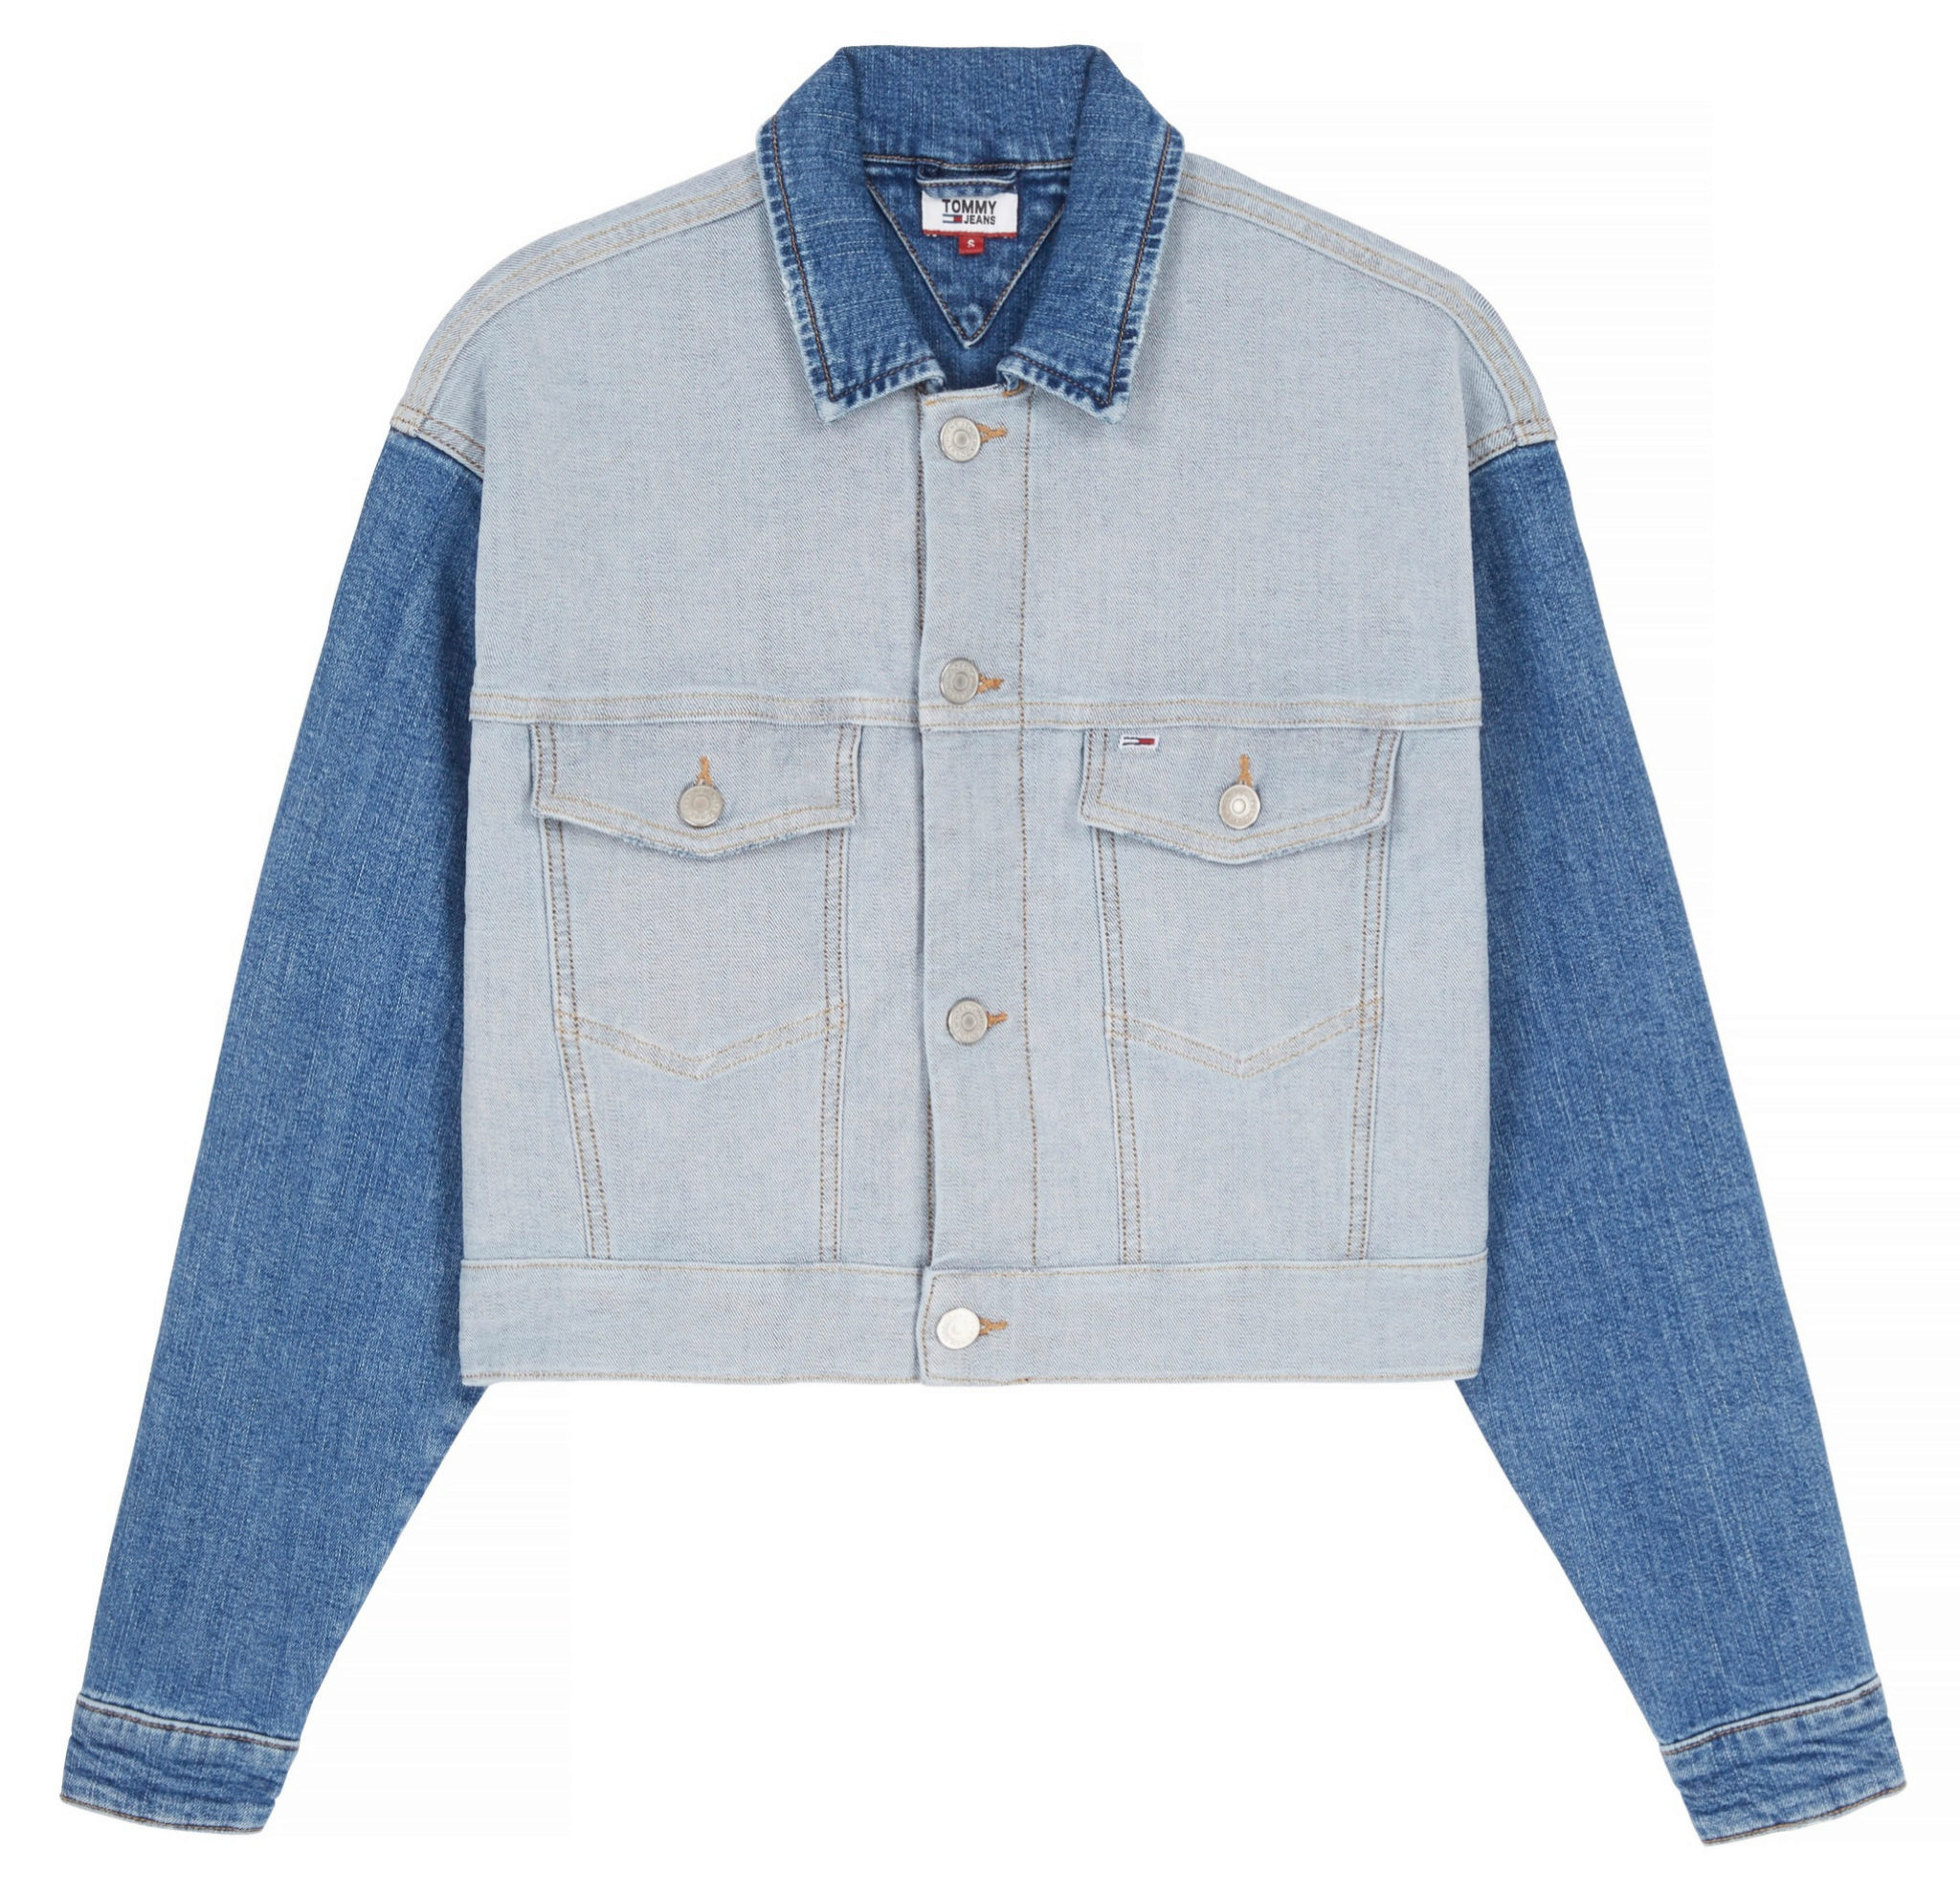 Cazadora con doble denim de Tommy Hilfiger x Amazon